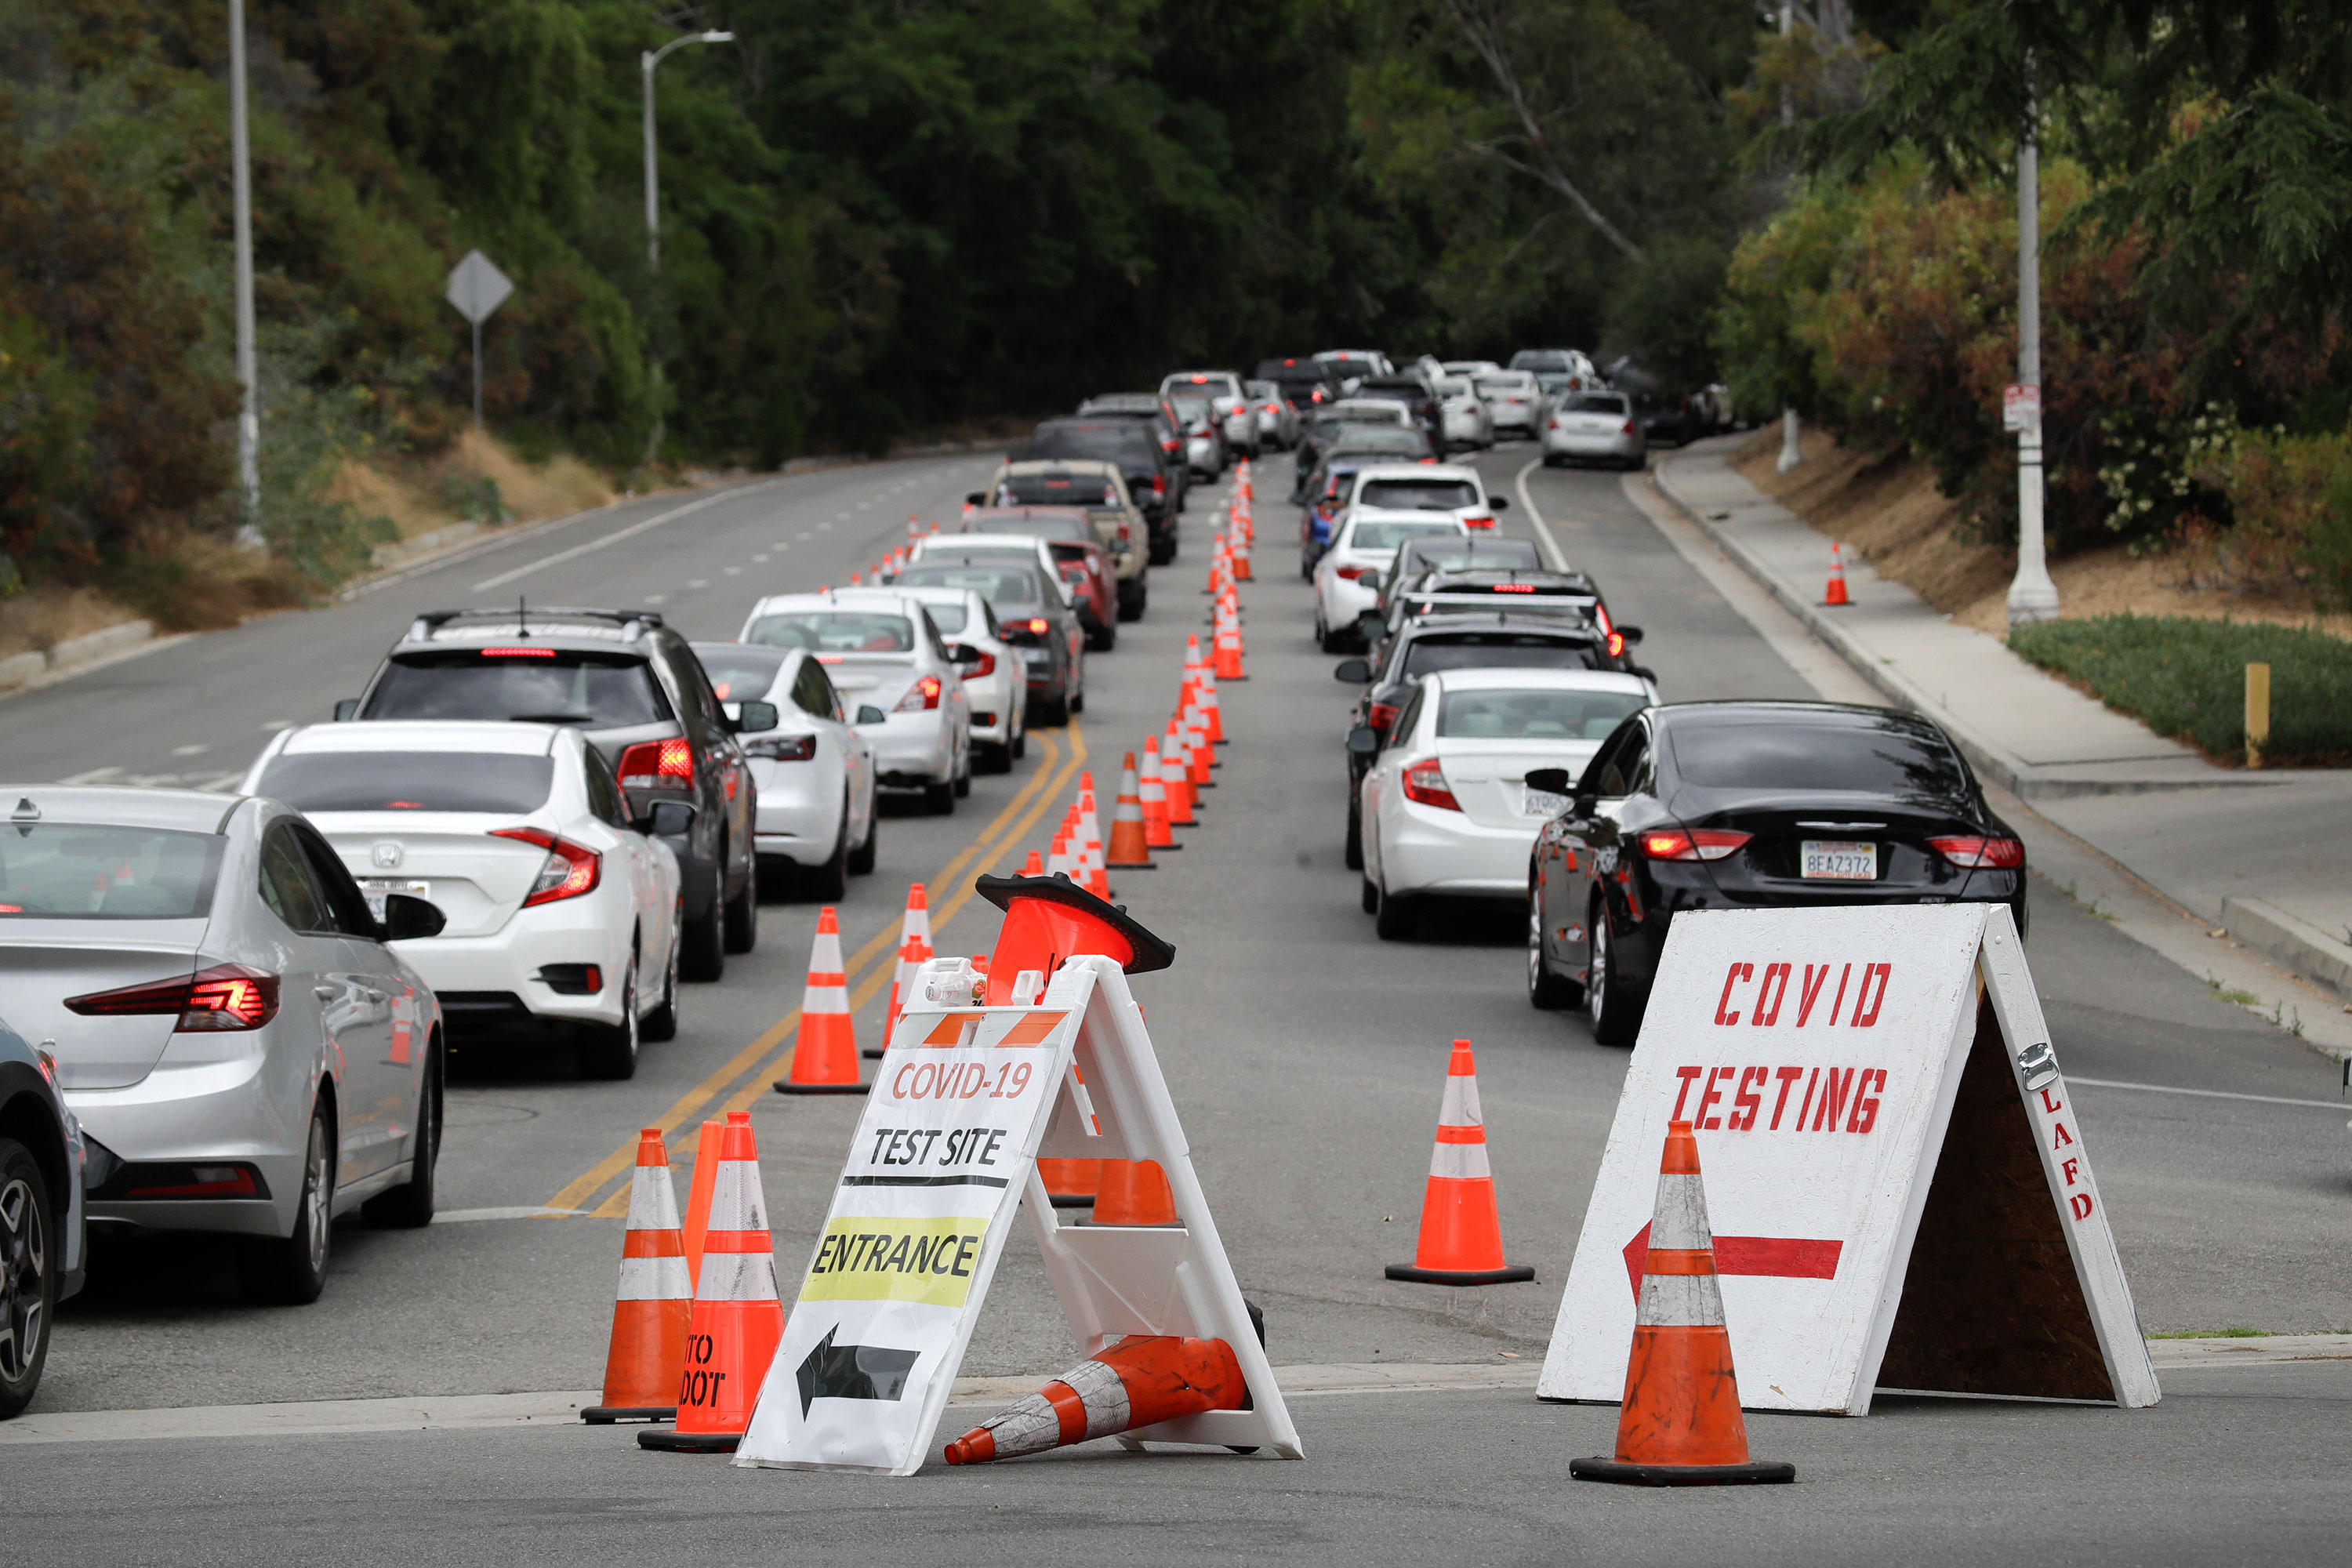 Motorists line up at a coronavirus testing site at Dodger Stadium on June 29 in Los Angeles, California.